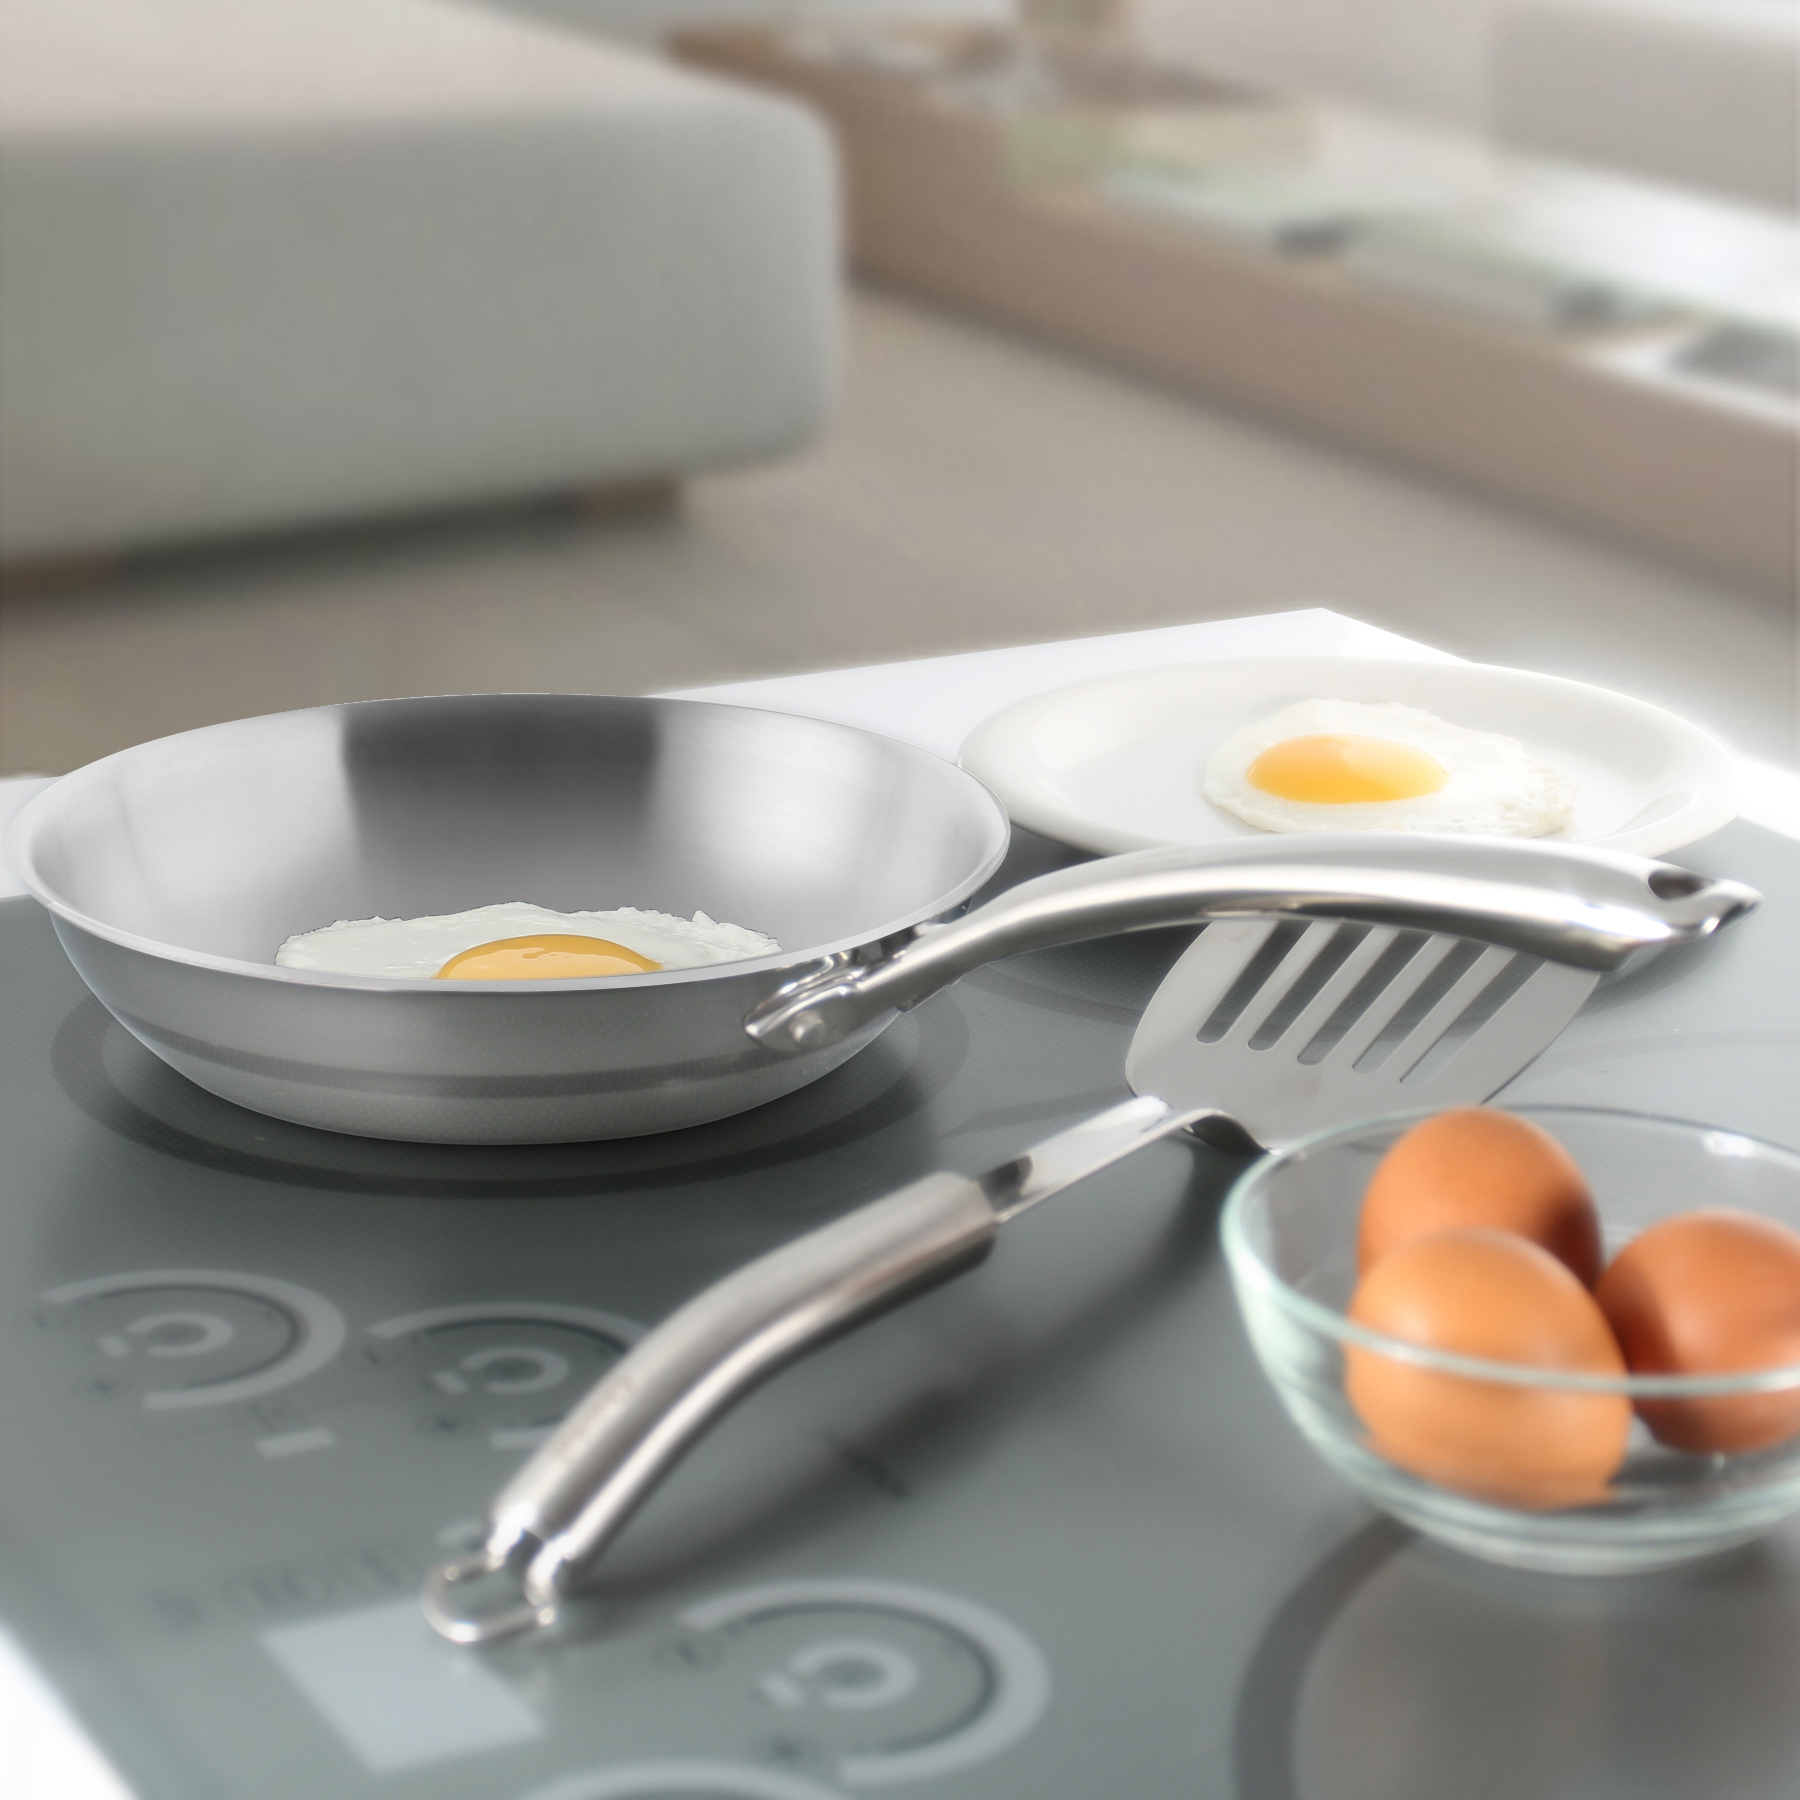 this 8 inch pan will heat up rapidly and respond immediately when you adjust the temperature on your stove